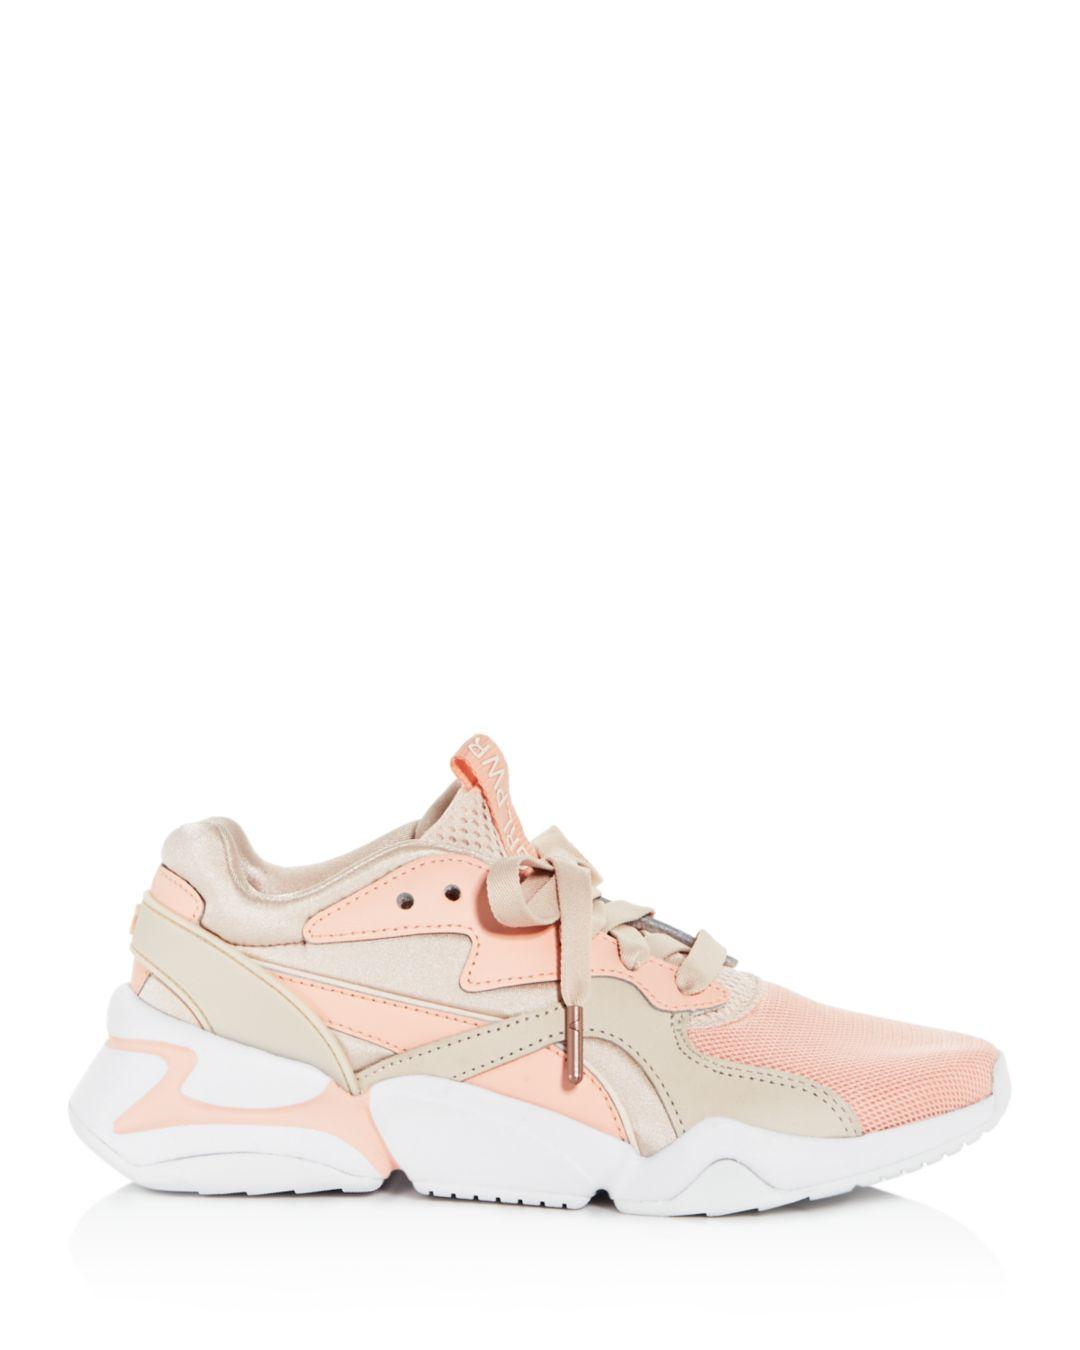 2b4d6be8b2cf37 Lyst - Puma Women s Nova Grl Pwr Low-top Sneakers in Pink